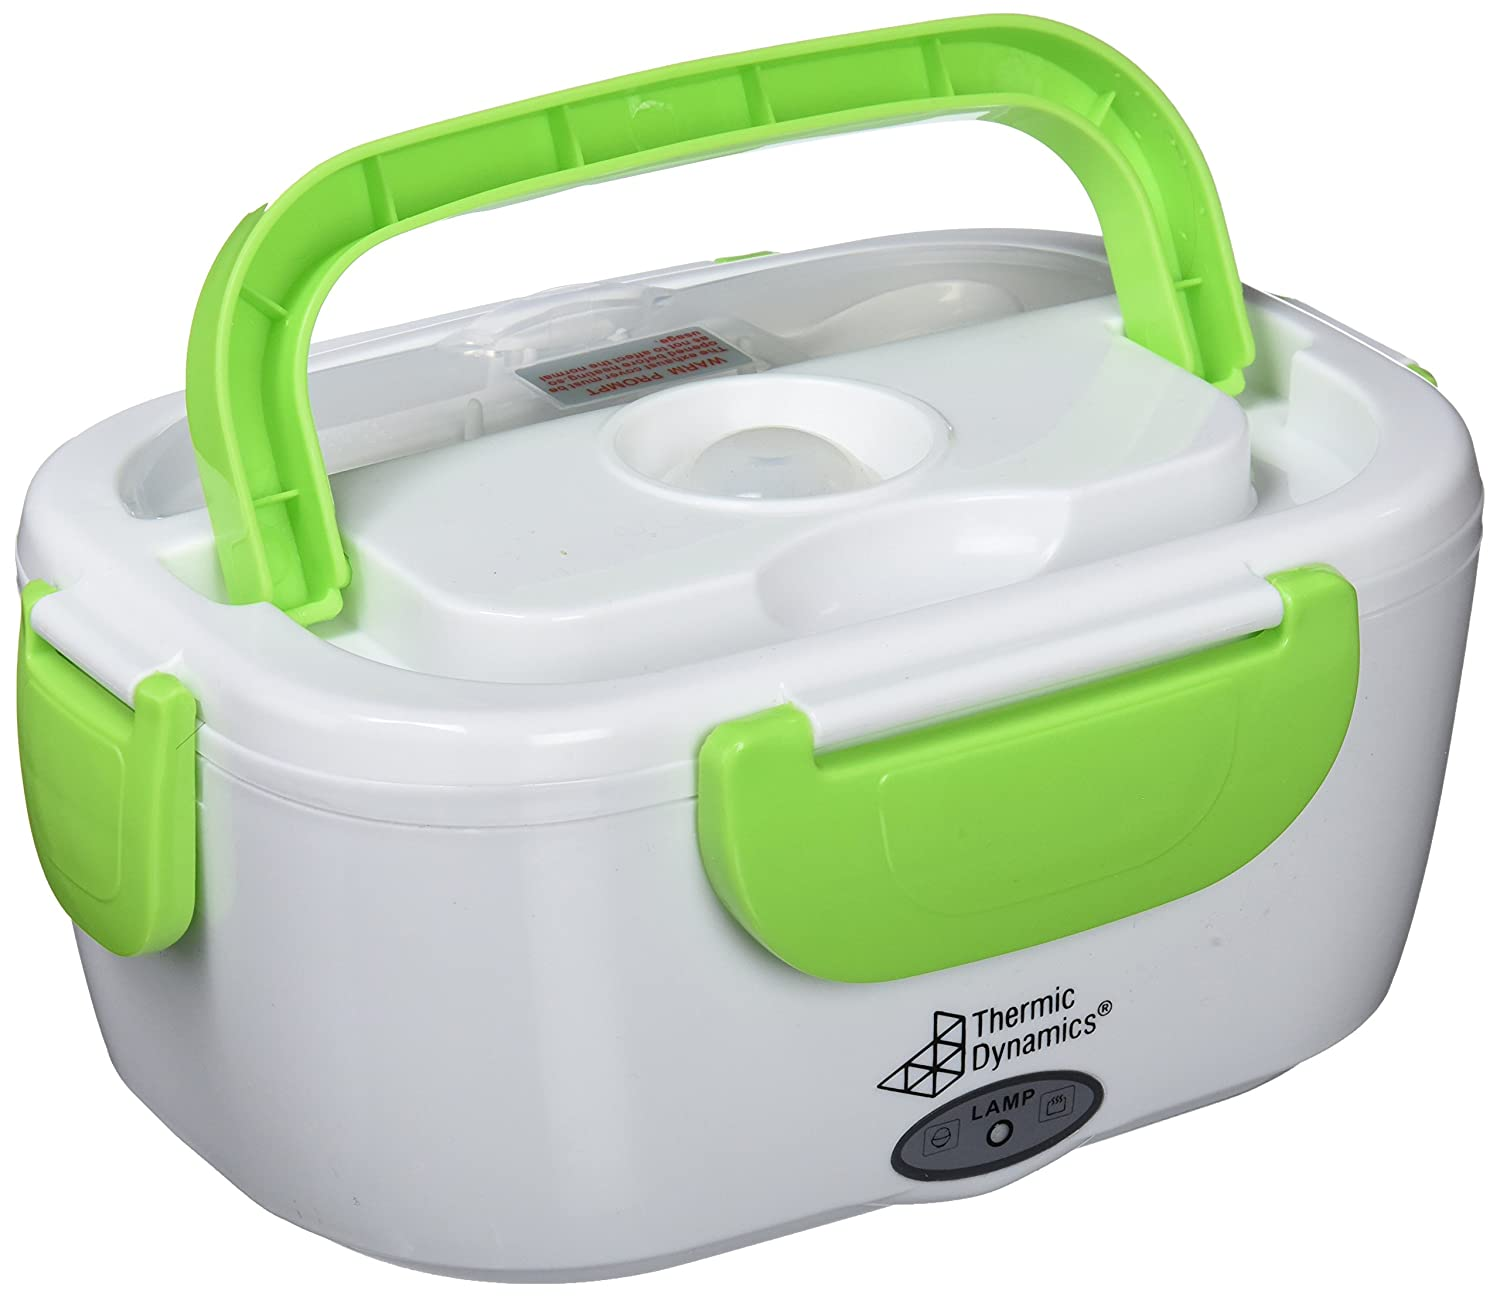 Thermic Dynamics Lunchbox Electric Car Pitcher, White/Green, 23 x 10.5 cm x 16.5 cm IG107873